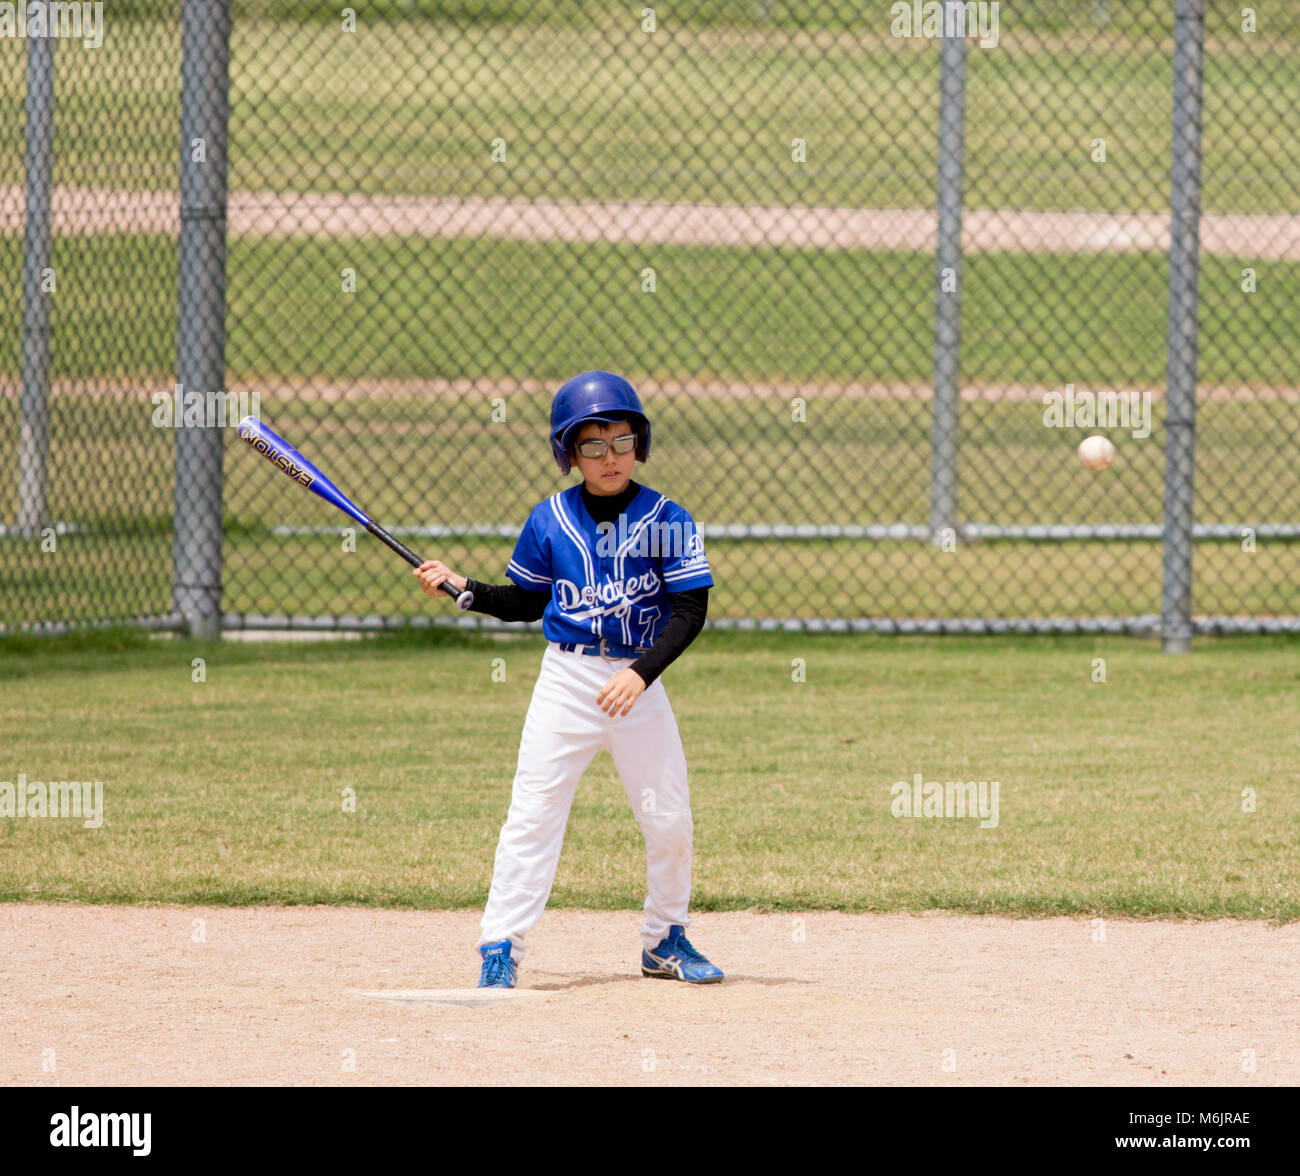 A young boy watches the ball go past him during a game of baseball in Cairns, Australia - Stock Image